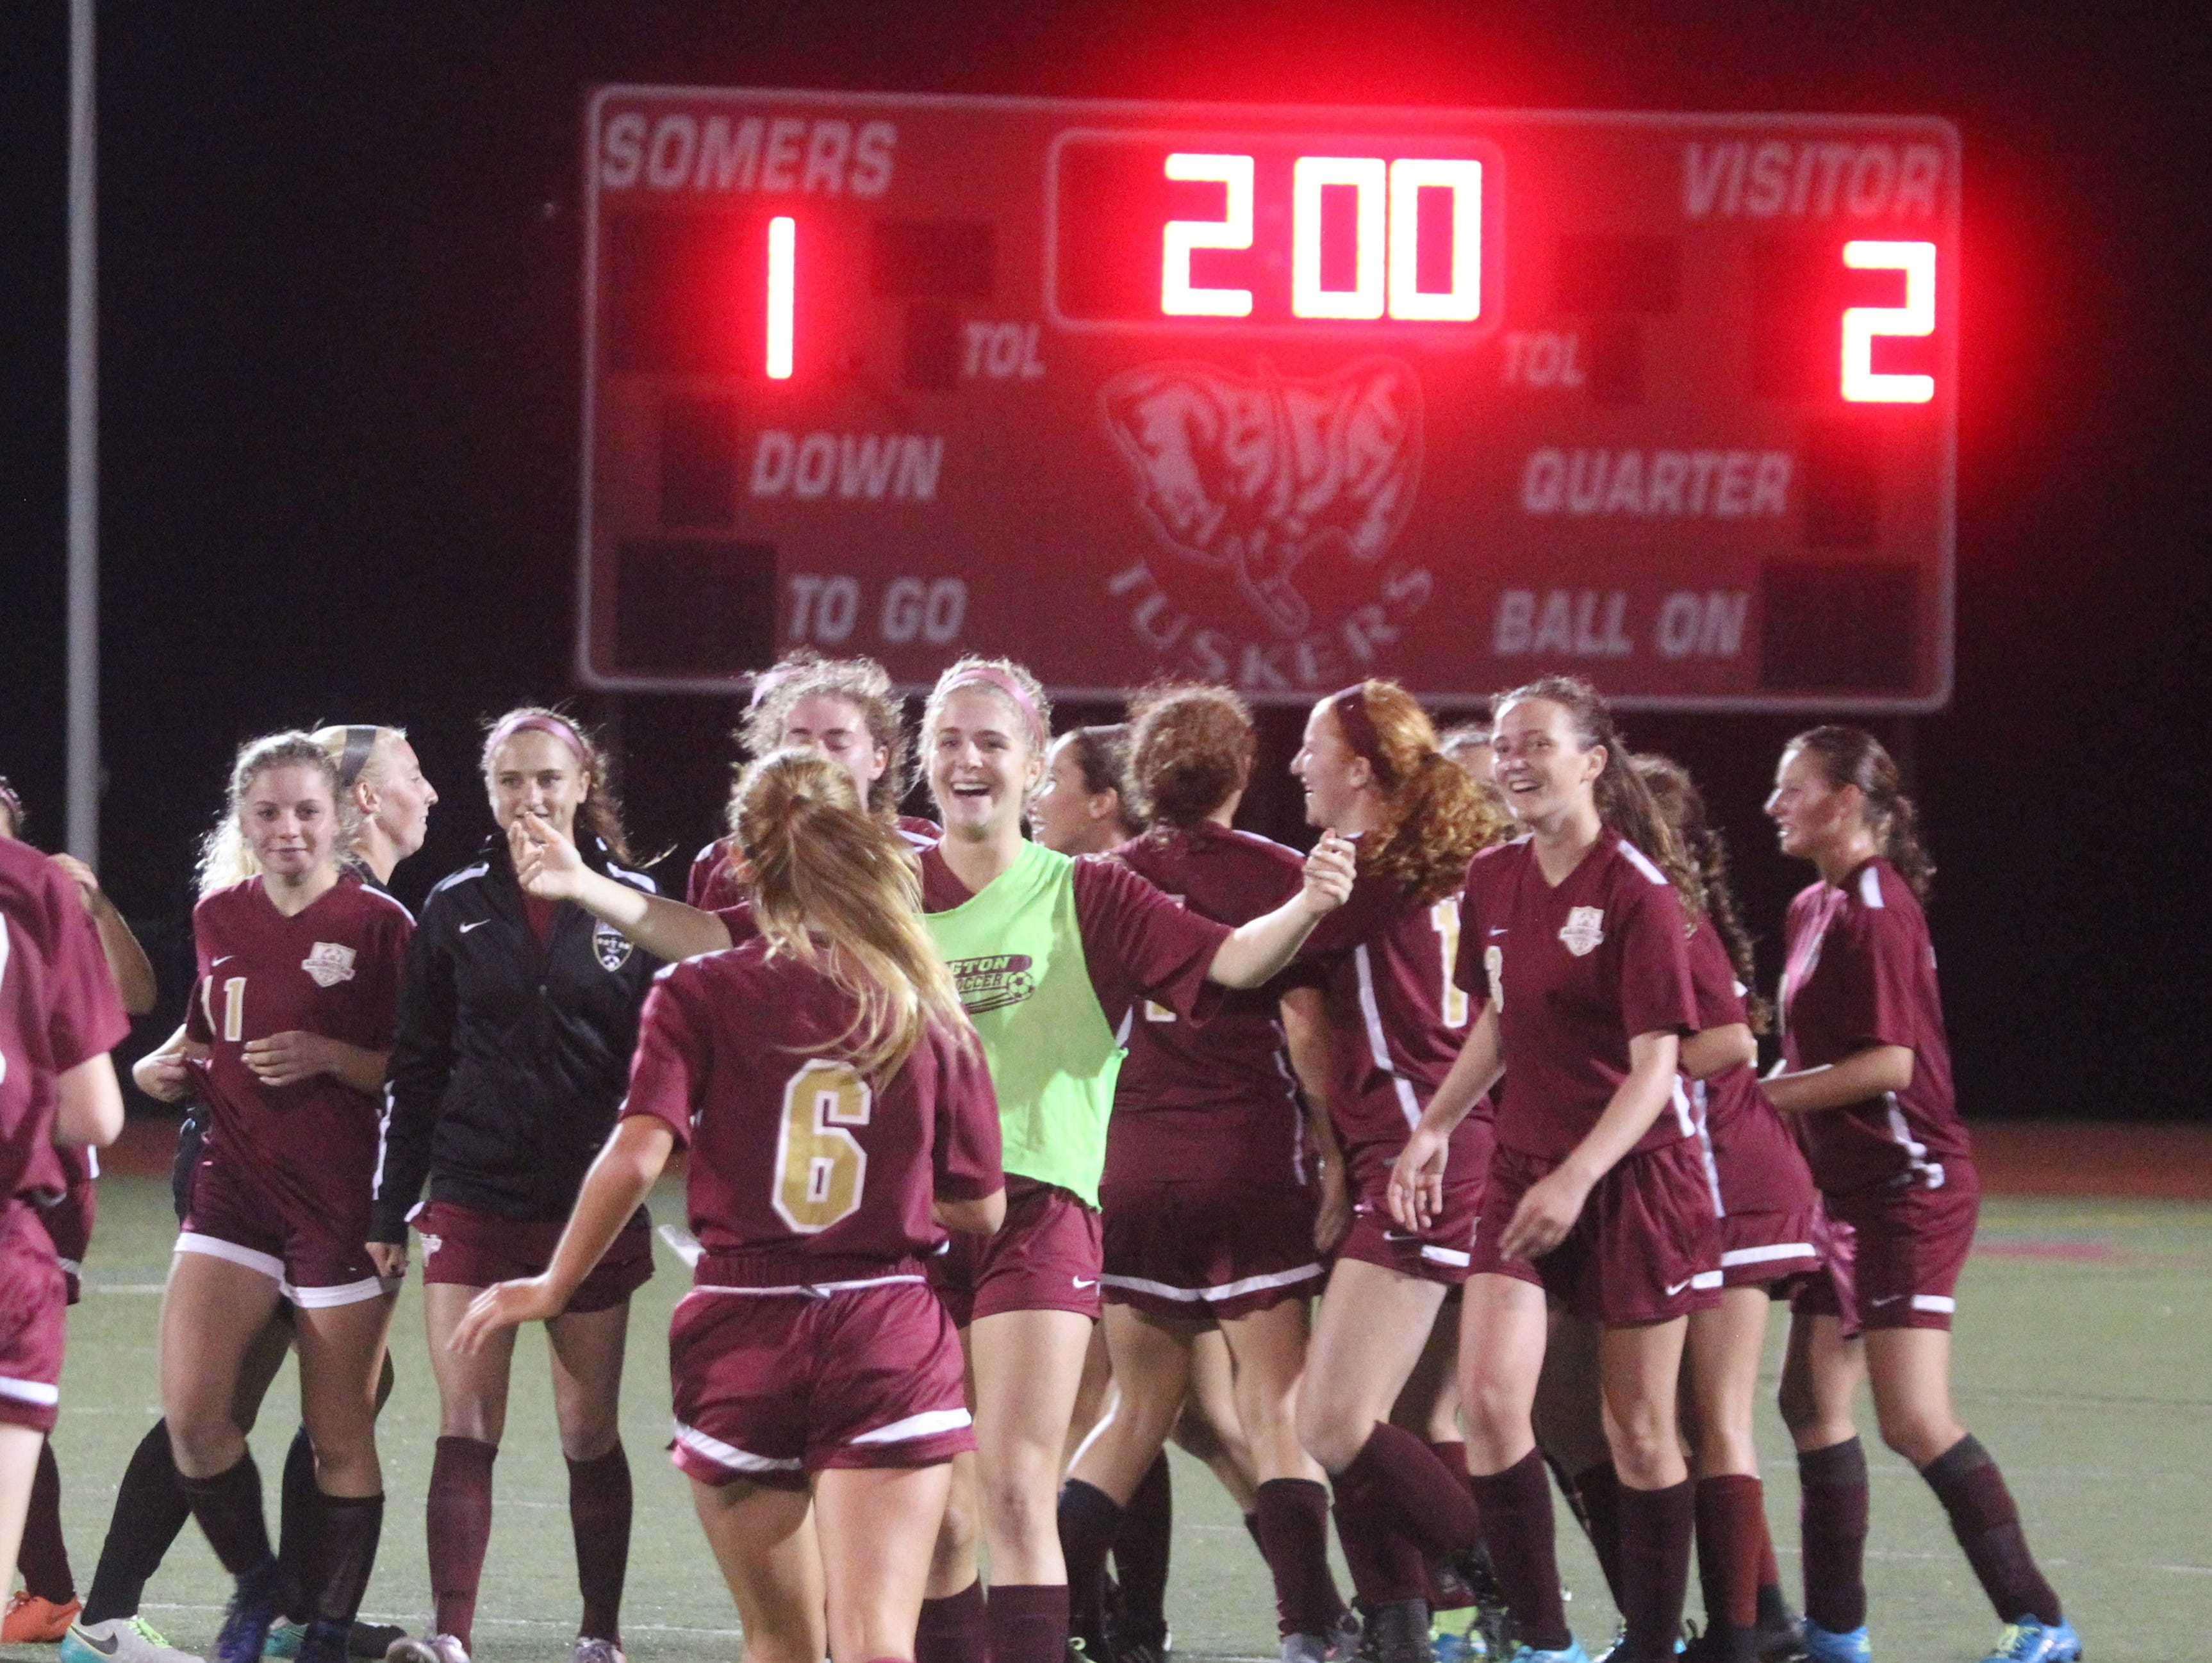 Arlington beat Somers 2-1 in overtime at Somers Oct. 17, 2016.